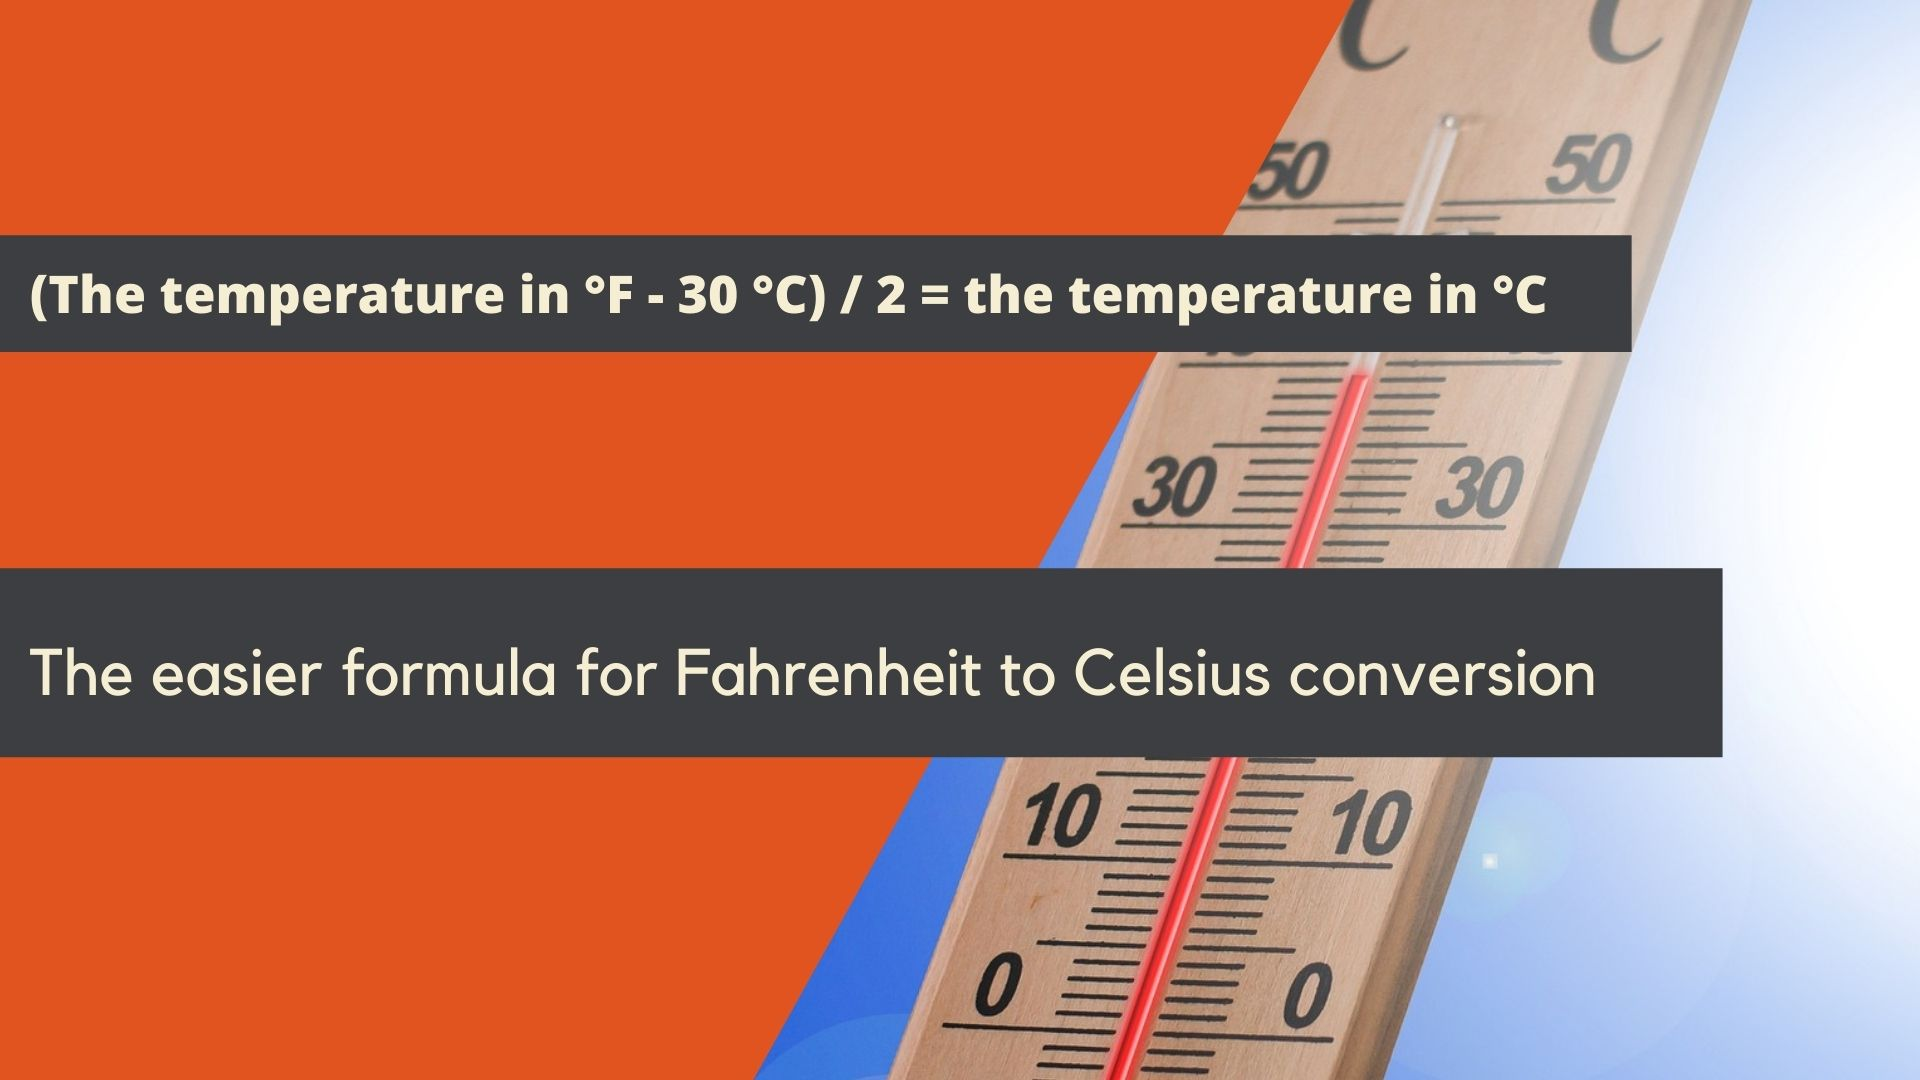 The easier formula for Fahrenheit to Celsius conversion